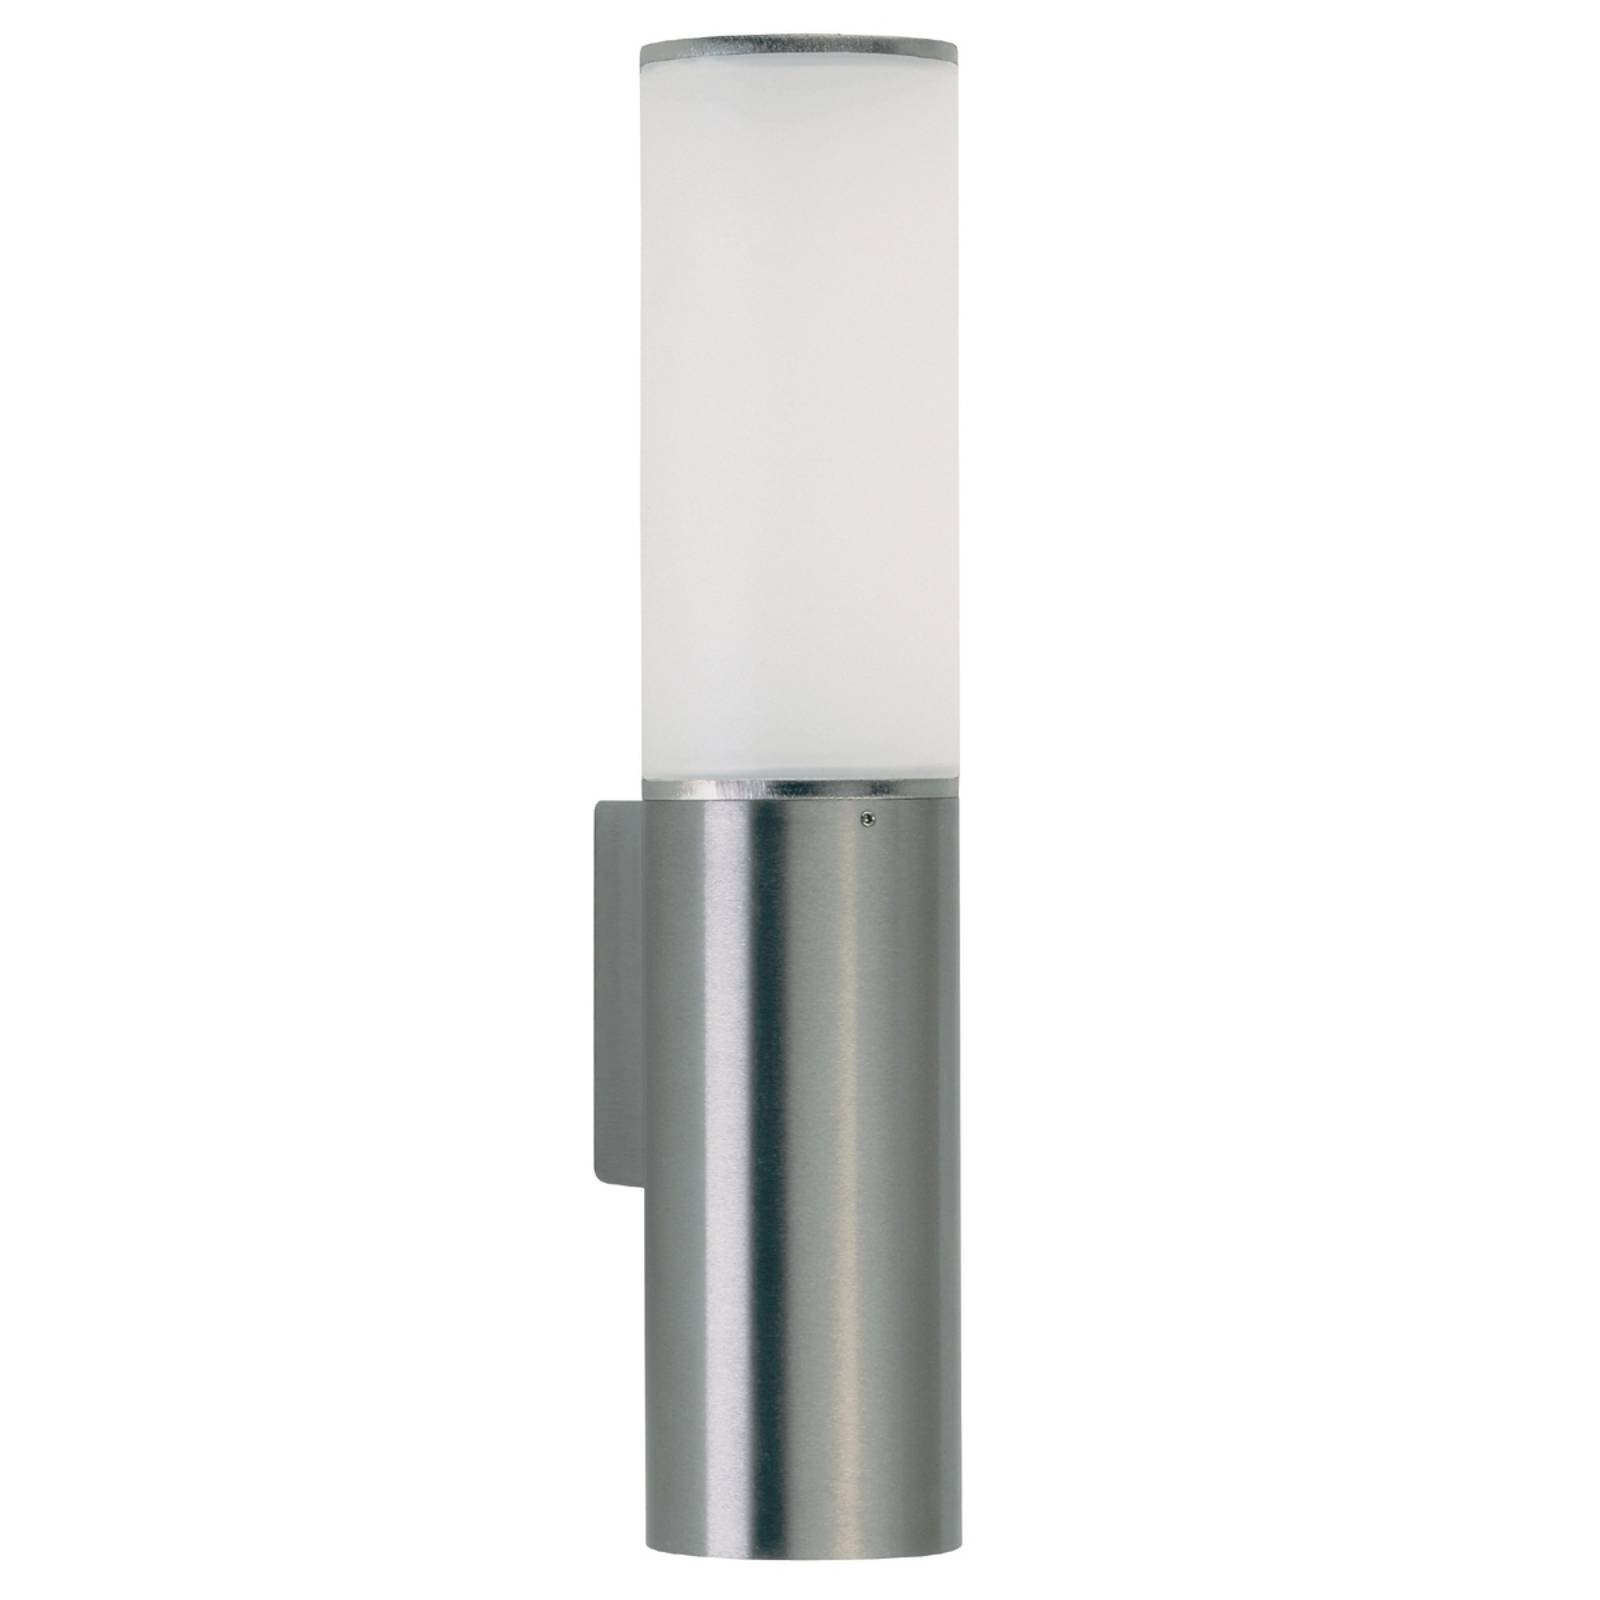 Stylish outdoor wall light Mariola from Albert Leuchten